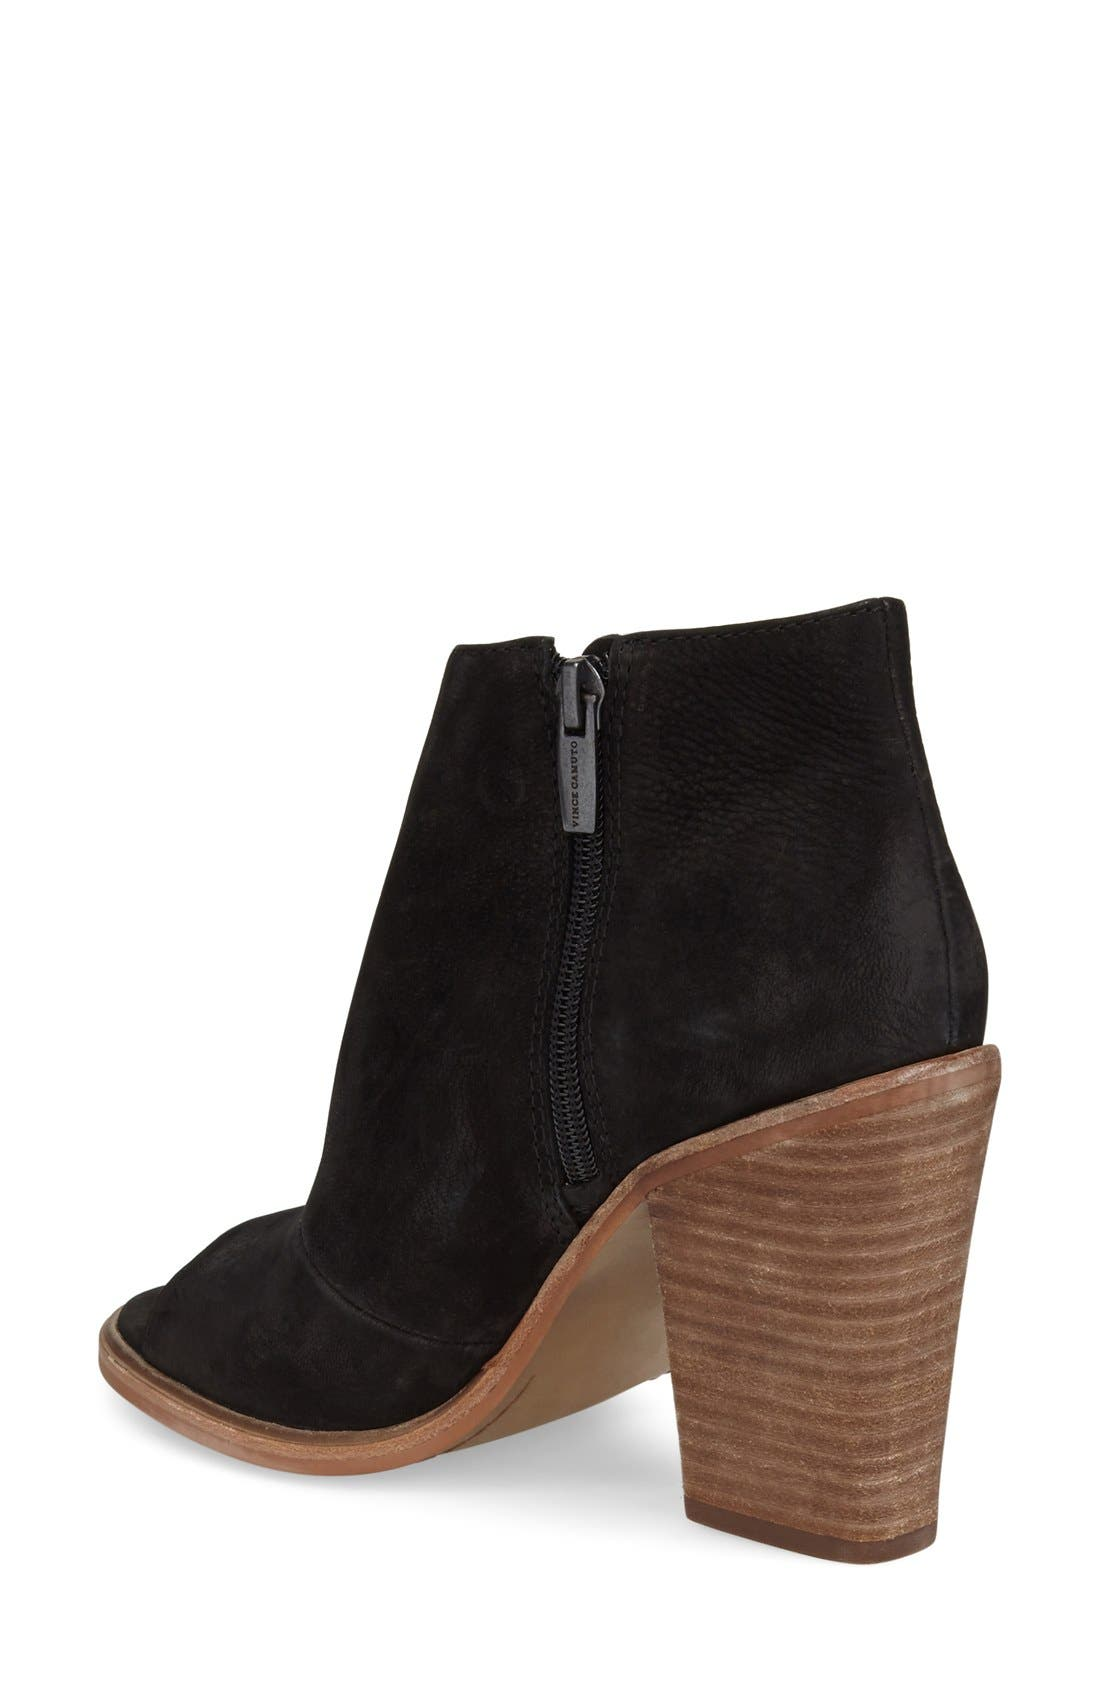 VINCE CAMUTO, 'Katleen' Peep Toe Bootie, Alternate thumbnail 2, color, 001